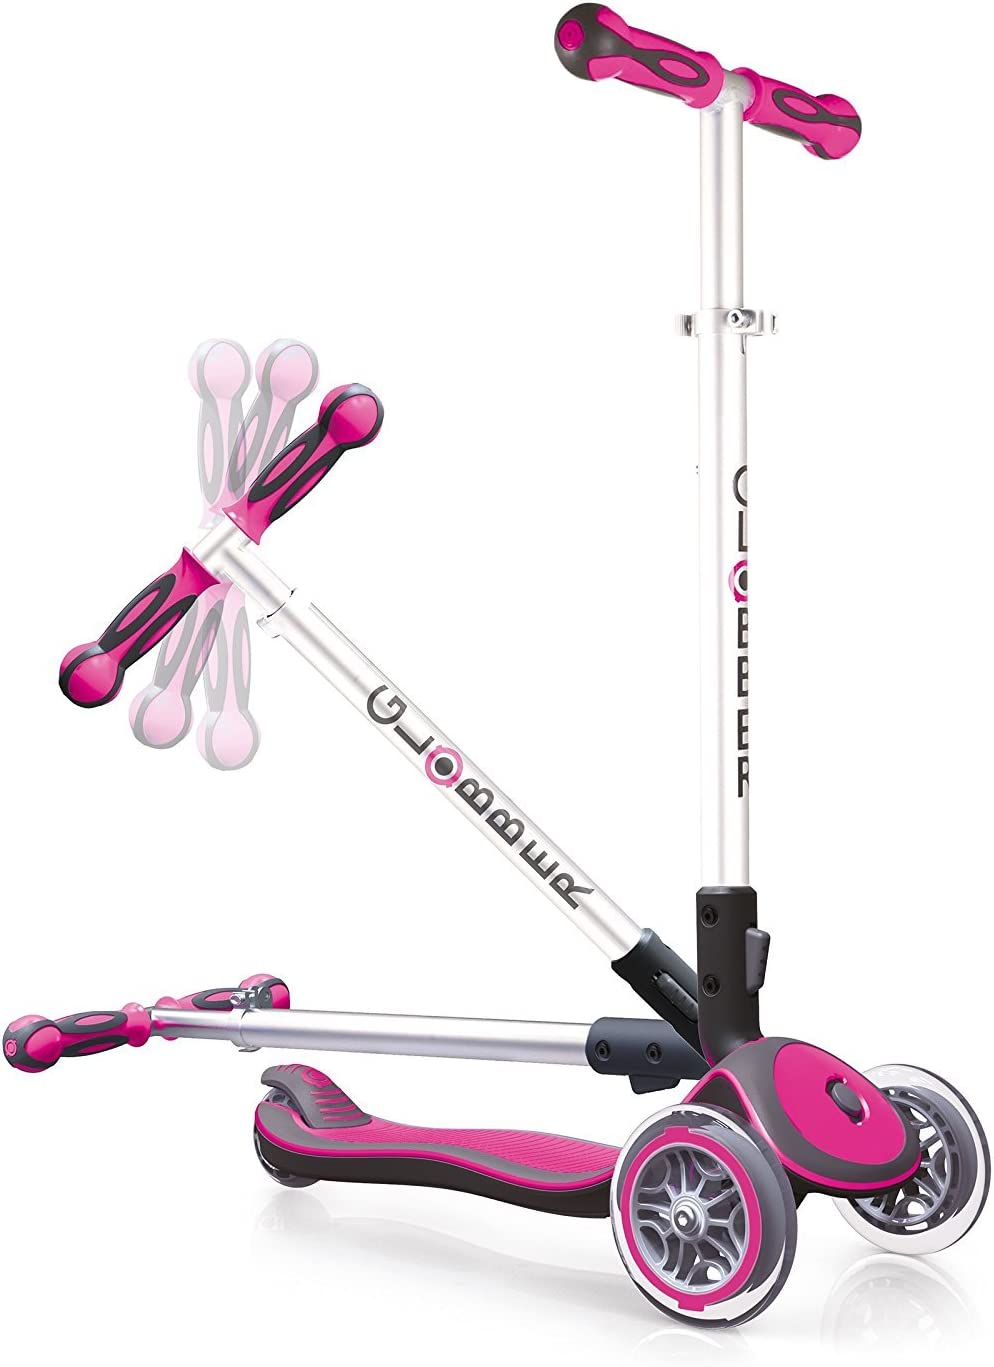 Globber Elite 3 Wheel Folding Adjustable Height Scooter Pink